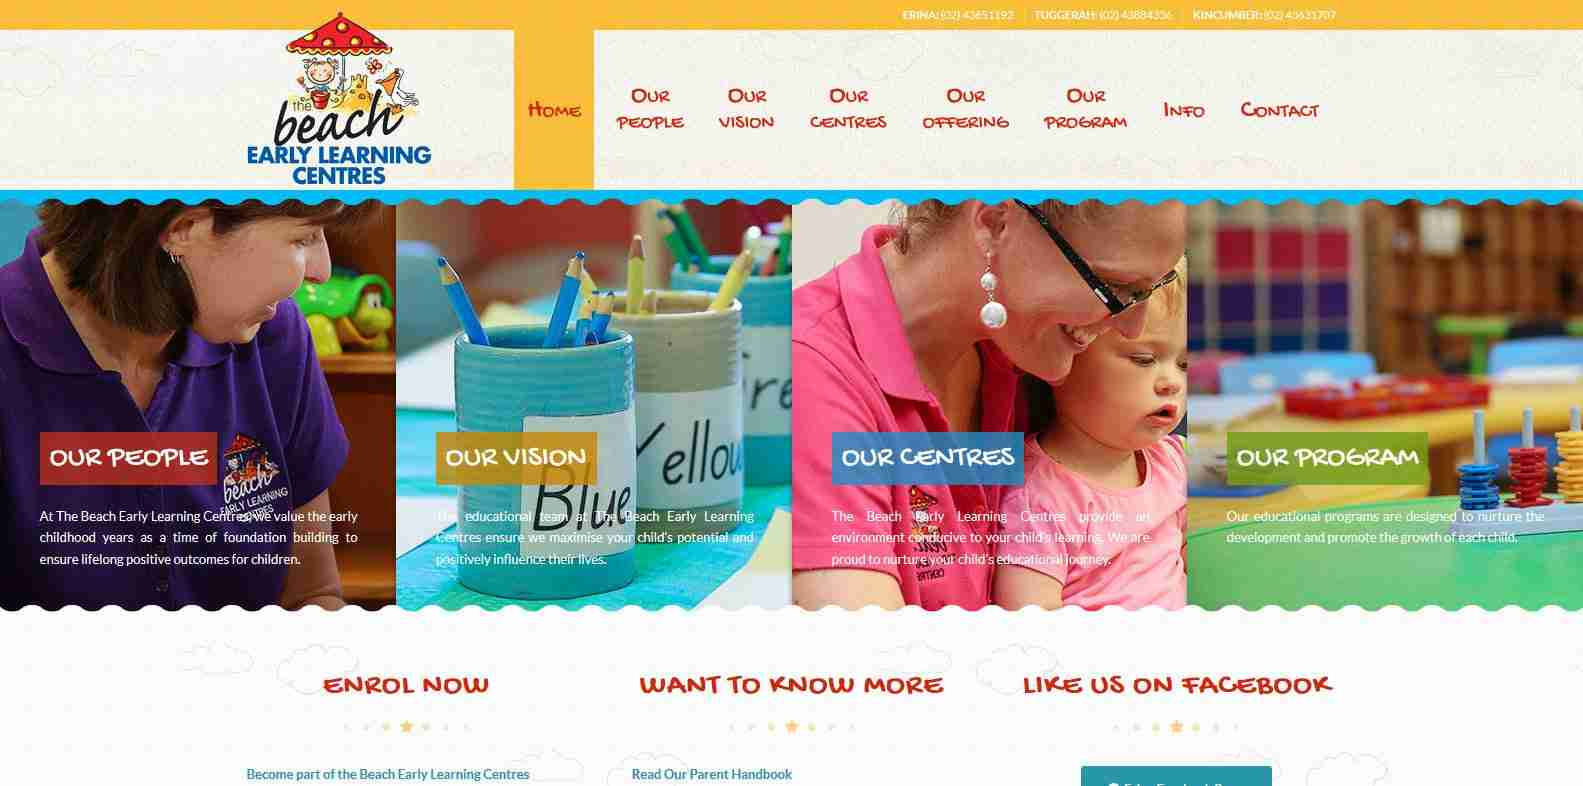 Beach Early Learning Centres - website